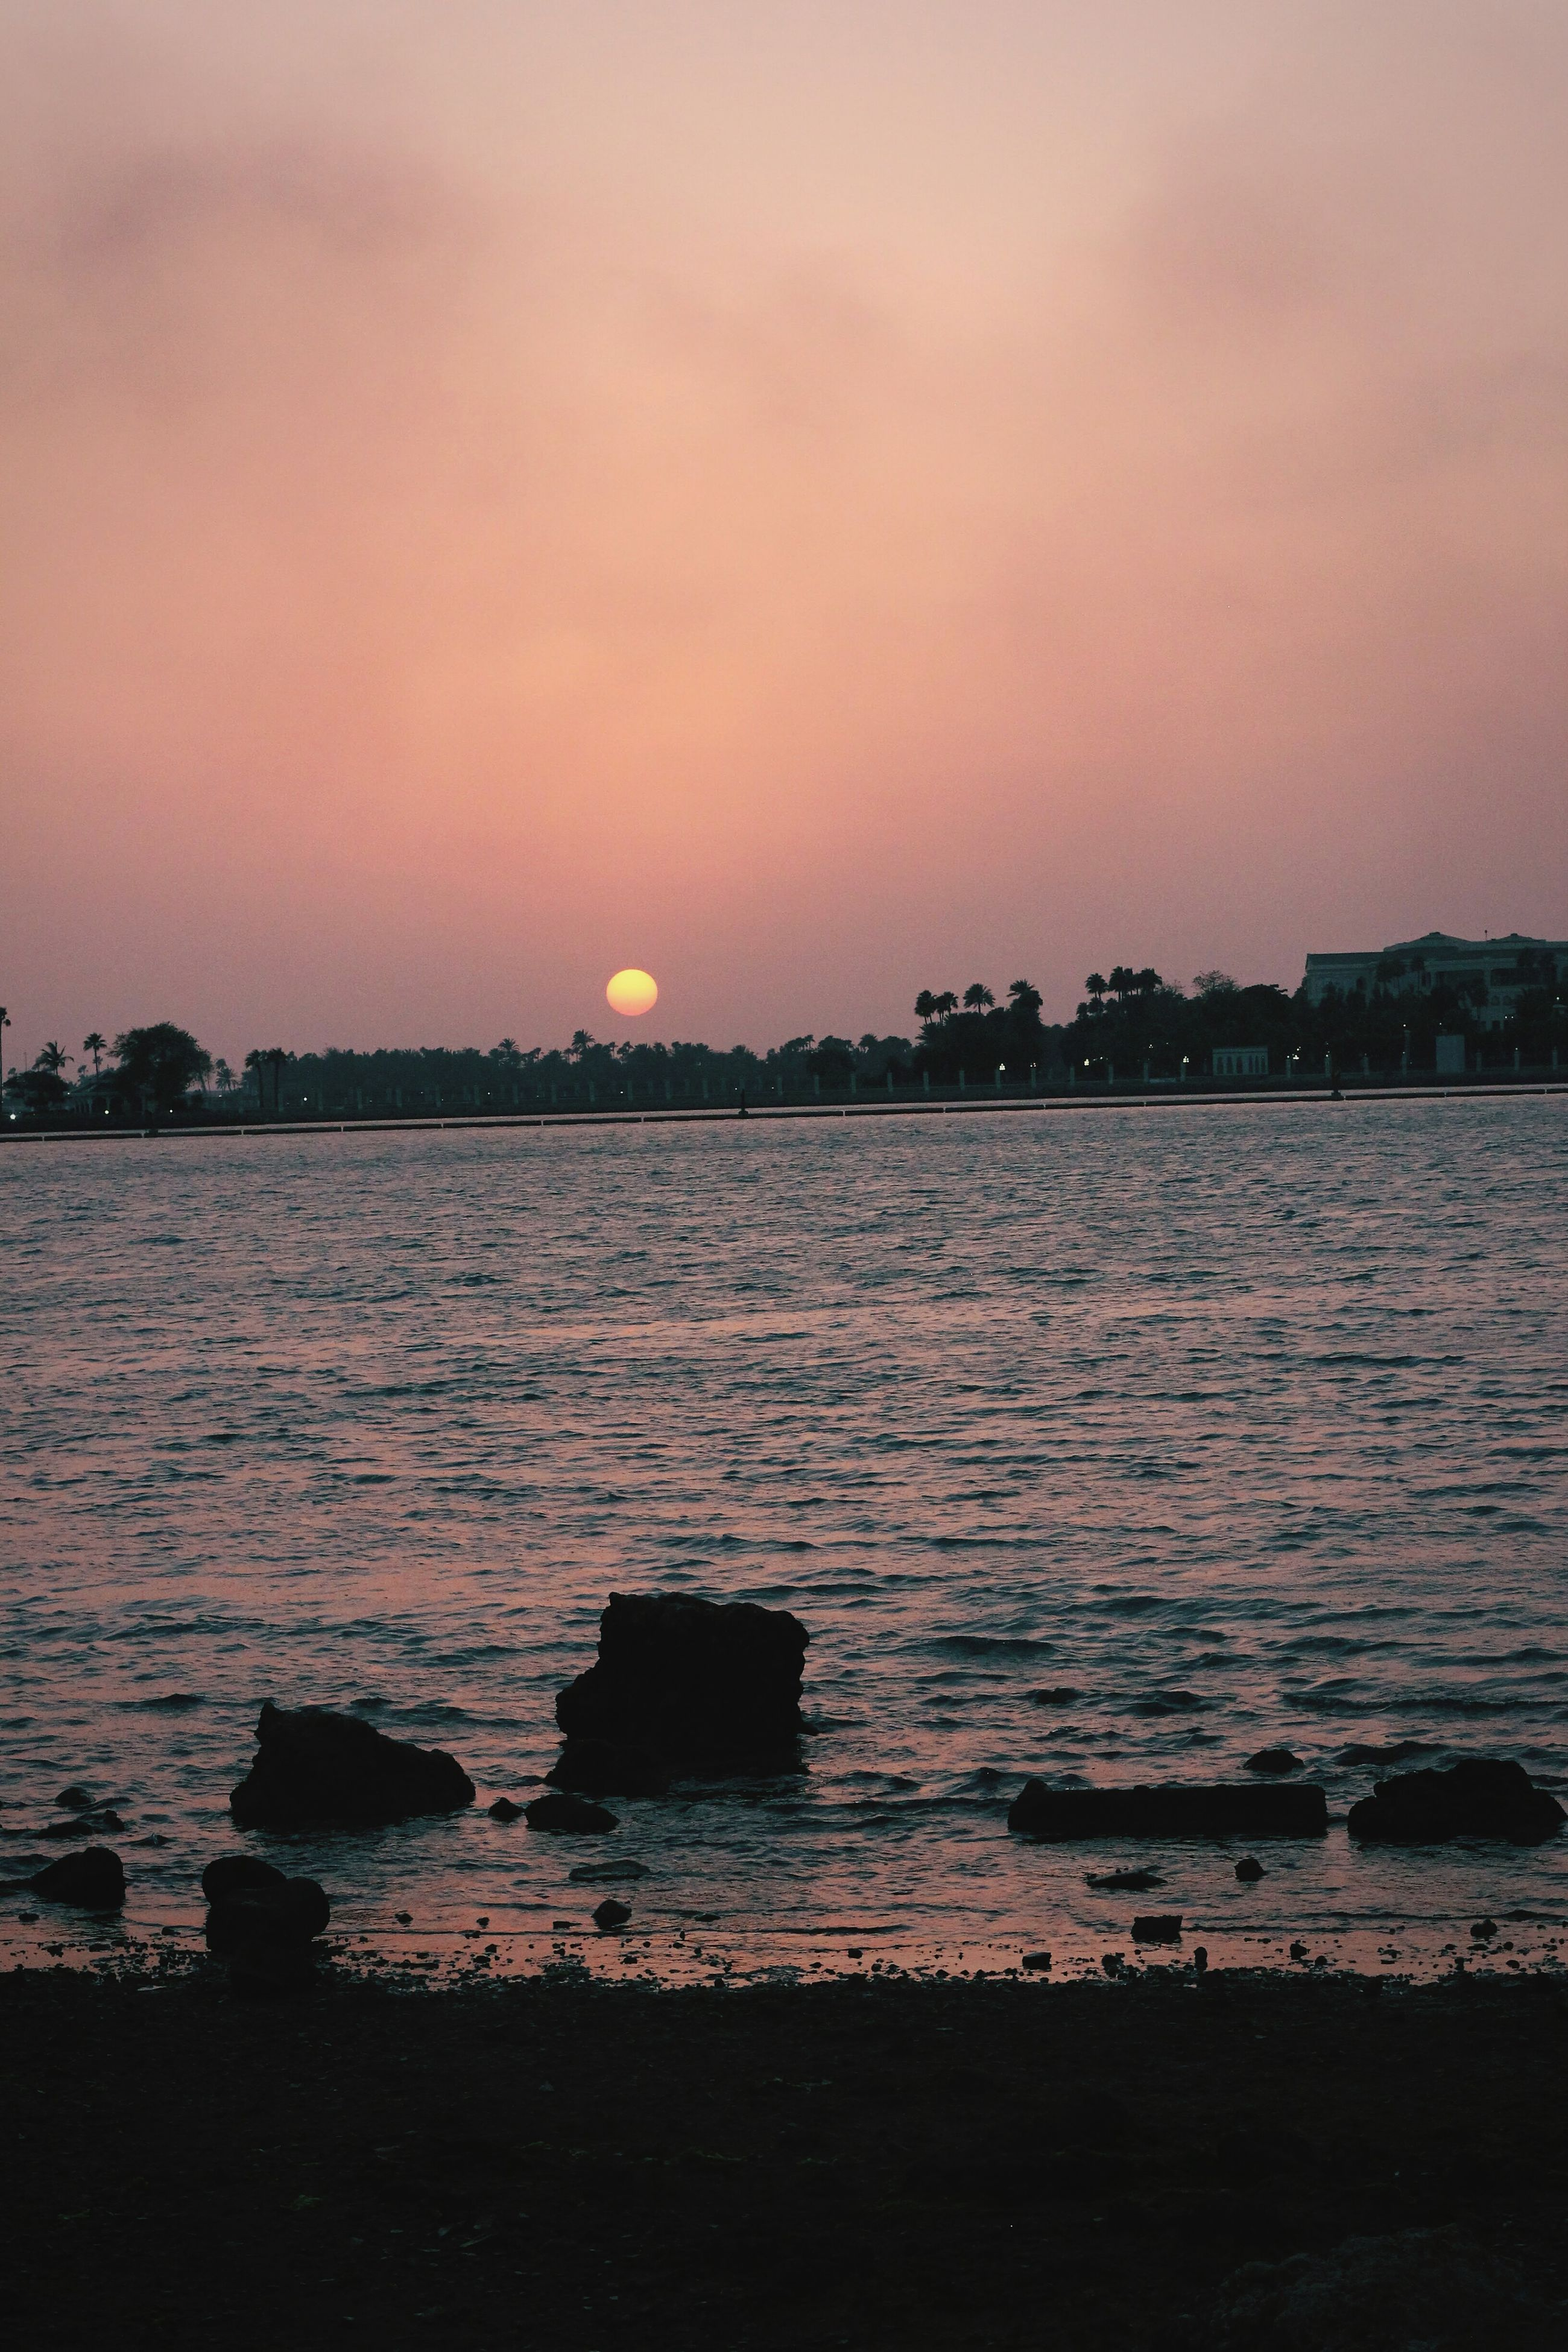 sunset, beauty in nature, nature, water, scenics, sun, sea, tranquility, no people, outdoors, tranquil scene, sky, day